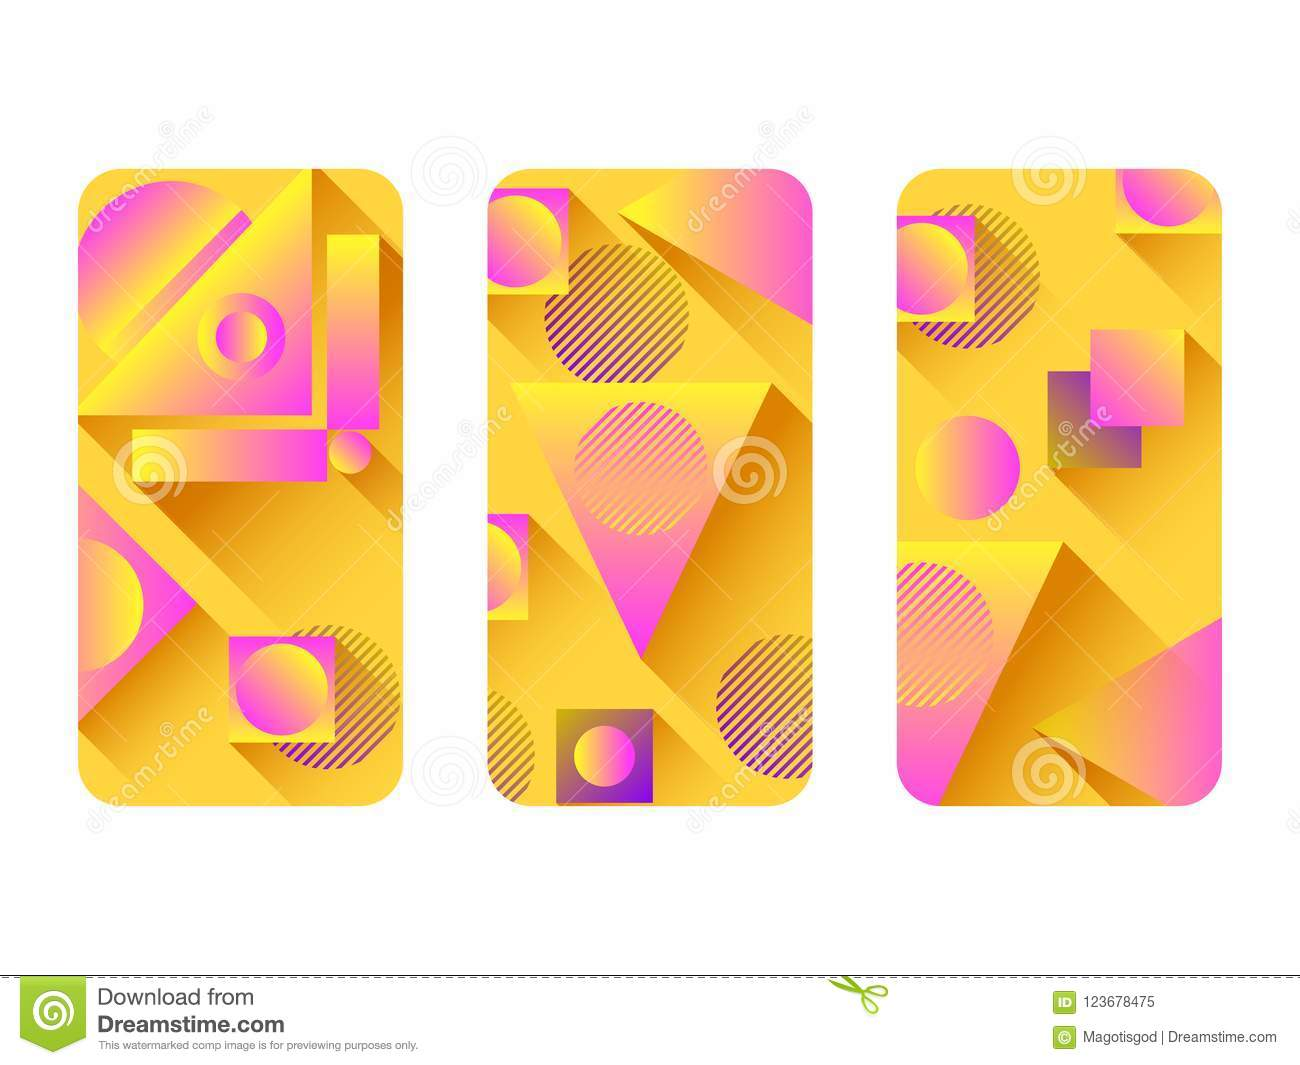 ebb28c82ae6a6c Phone case mockup. Memphis pattern background. Gradients geometric shape  style of the 80s.